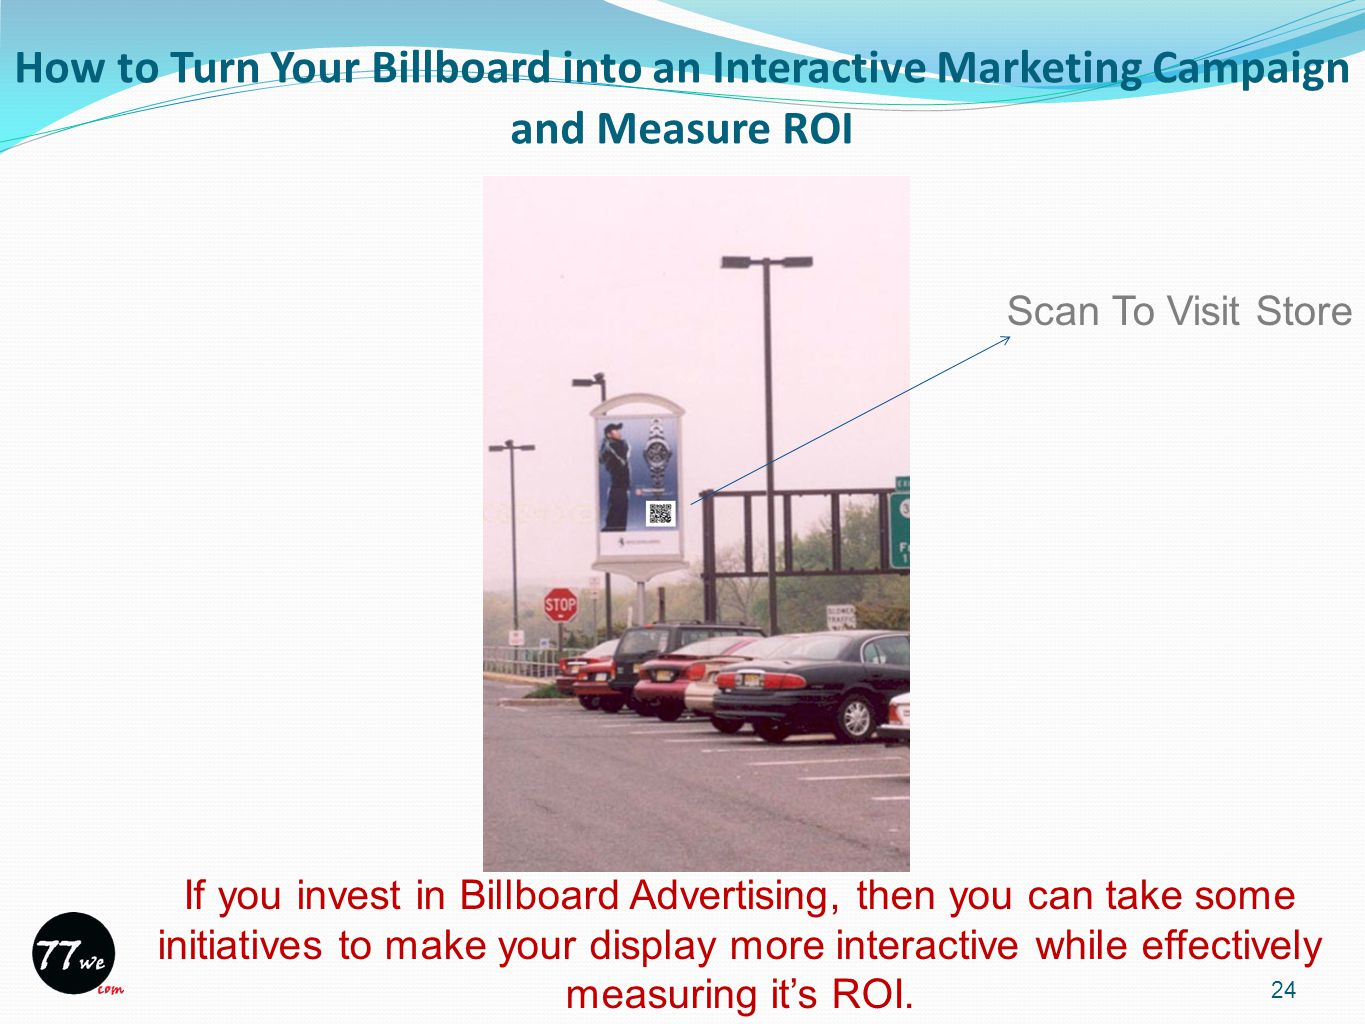 How to Turn Your Billboard into an Interactive Marketing Campaign and Measure ROI 24 If you invest in Billboard Advertising, then you can take some initiatives to make your display more interactive while effectively measuring it's ROI.